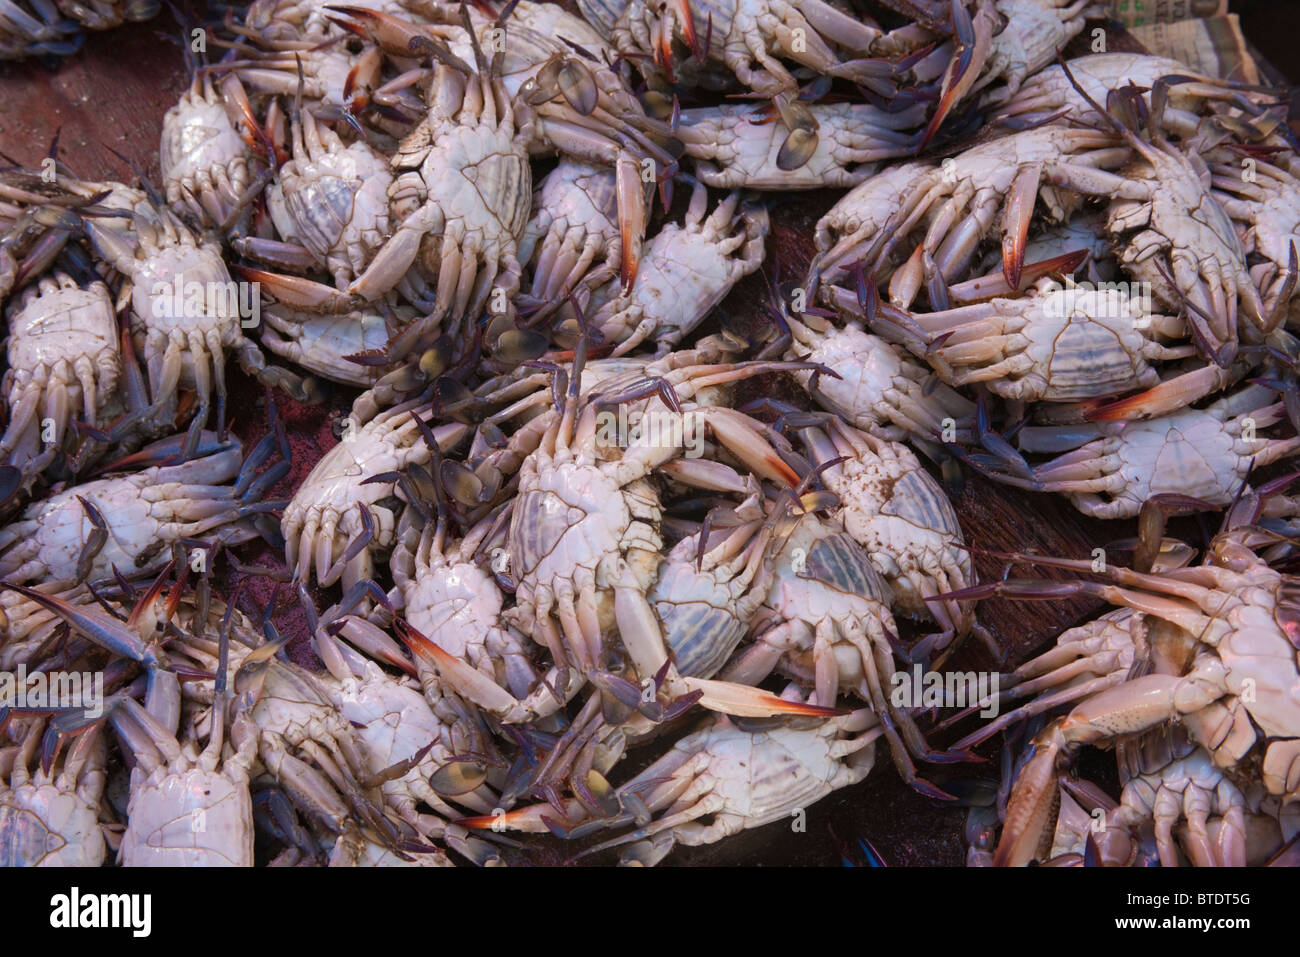 Crabs in buckets for sale at a fish market - Stock Image